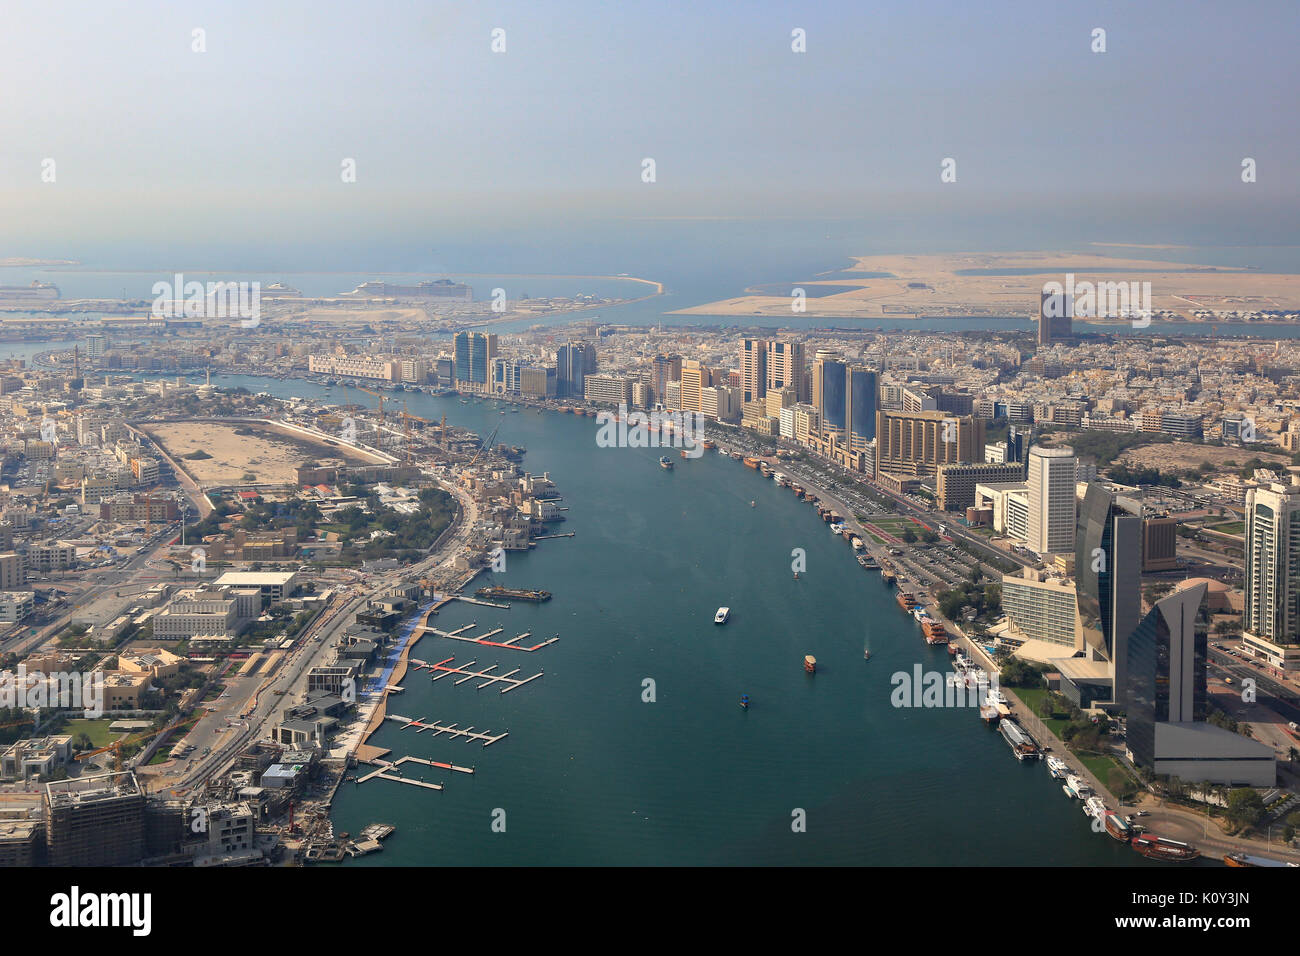 Dubai The Creek delta aerial view photography UAE - Stock Image